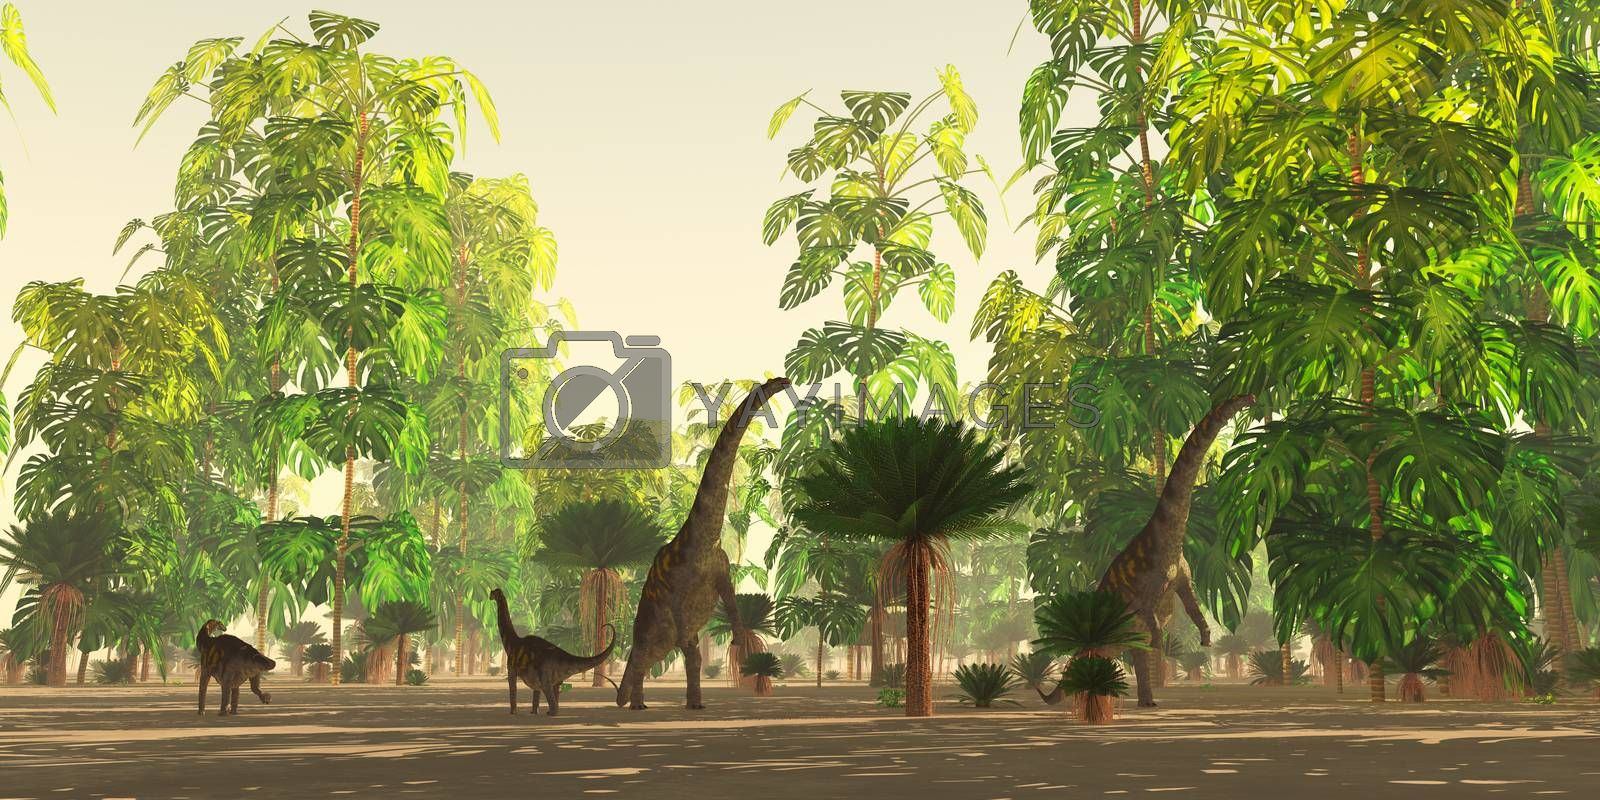 A Cycad and Monstera deliciosa forest in the Cretaceous Period provides forage for a herd of Argentinosaurus dinosaurs.